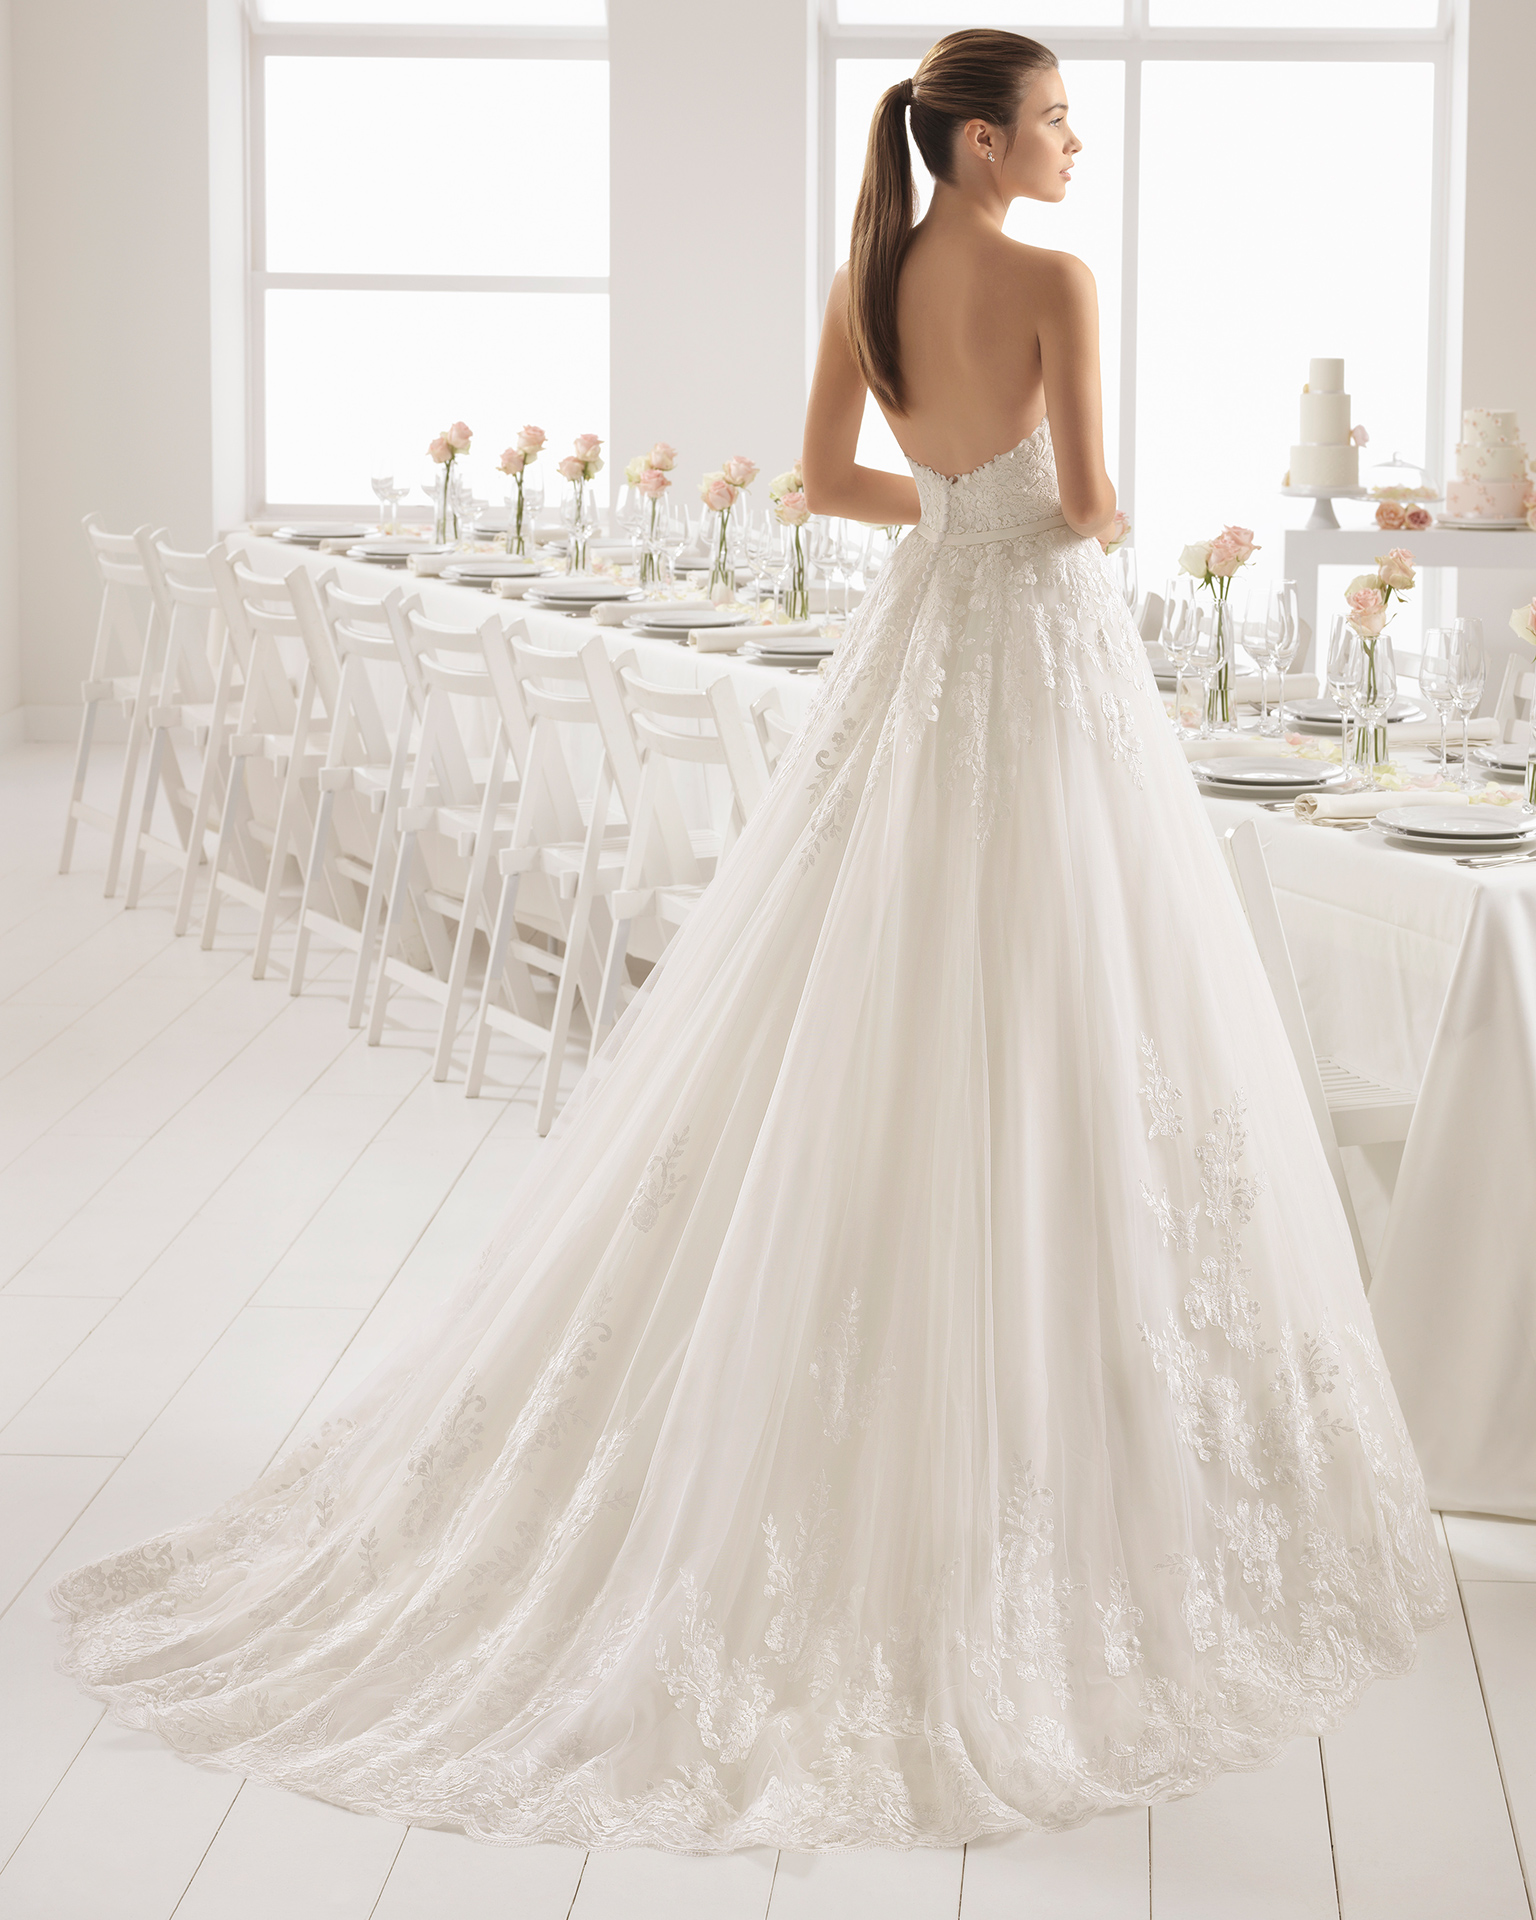 Romantic-style lace wedding dress with sweetheart neckline and bow at waist.